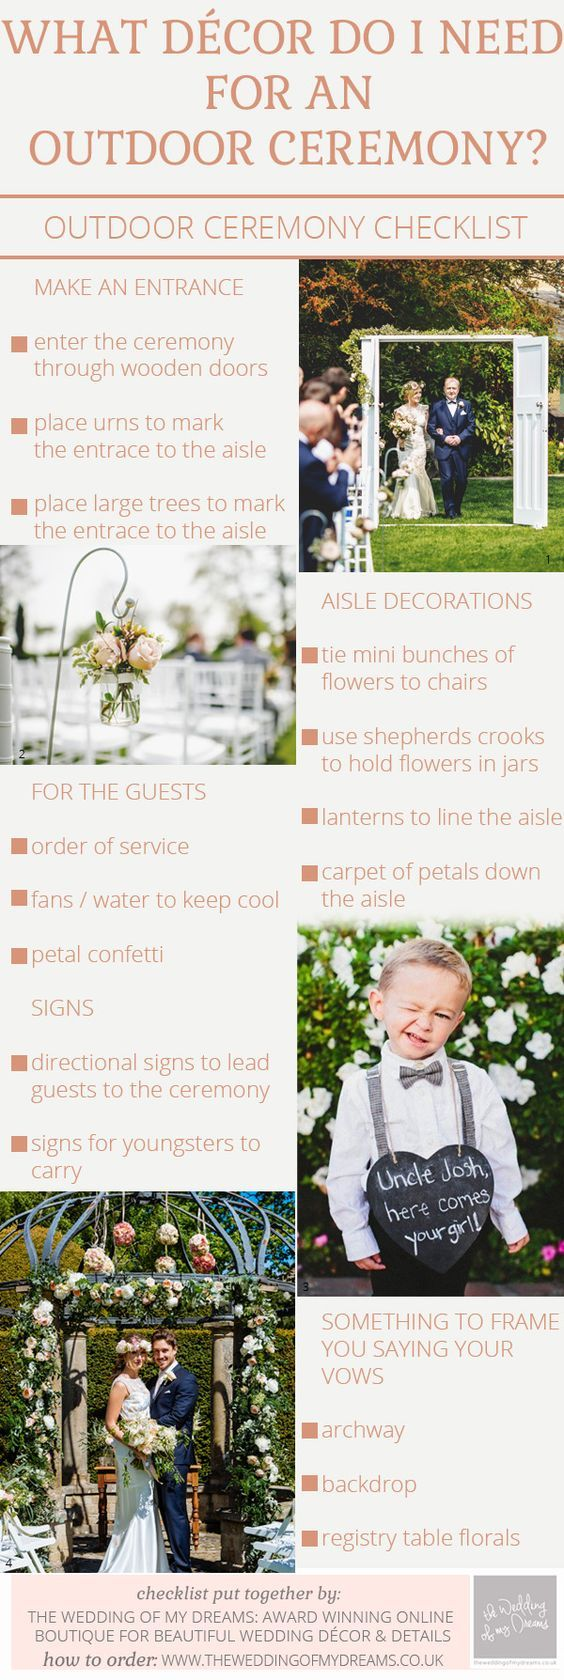 6 Wedding Checklist Templates for Rustic, Beach and ...